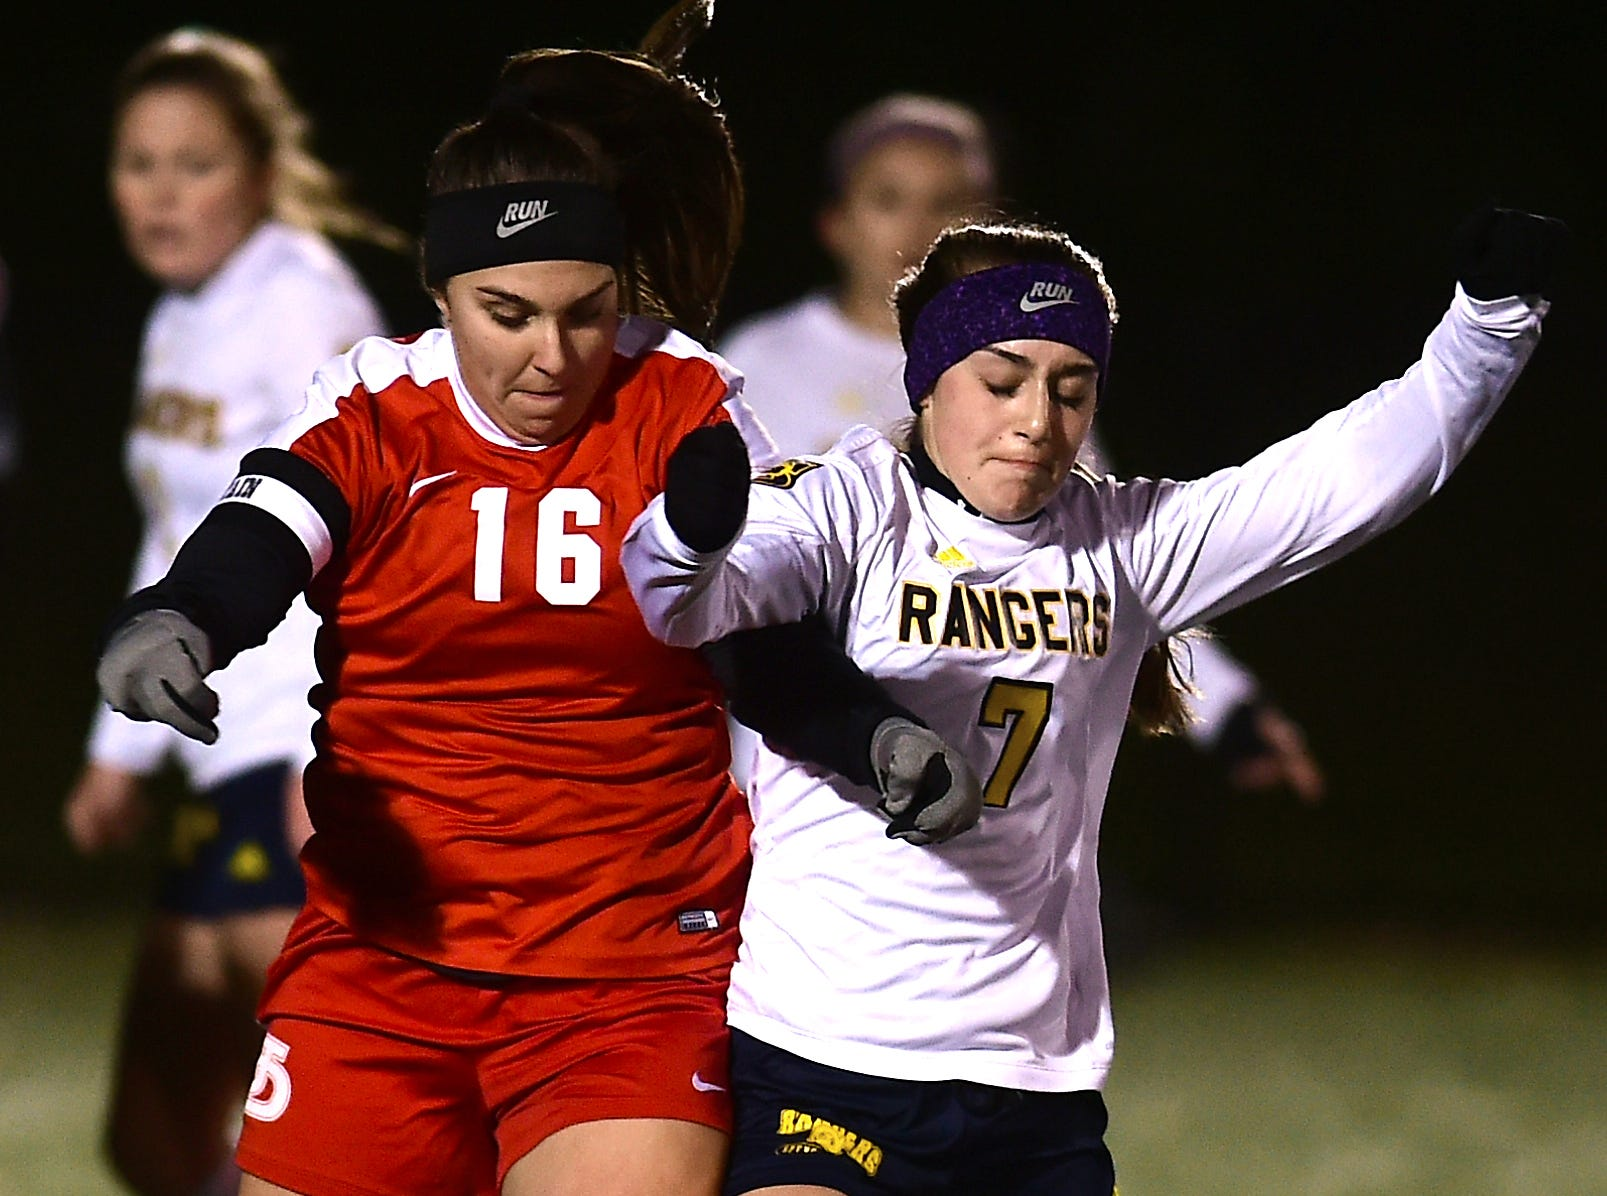 Hayley Quackenbush (16) of Jamesville-DeWitt and Sabrina Trapani (7) of Spencerport battle for control in the first half during the Class A NYSPHSAA Girls Soccer Championship semifinal at Tompkins Cortland Community College on Nov. 10, 2018.